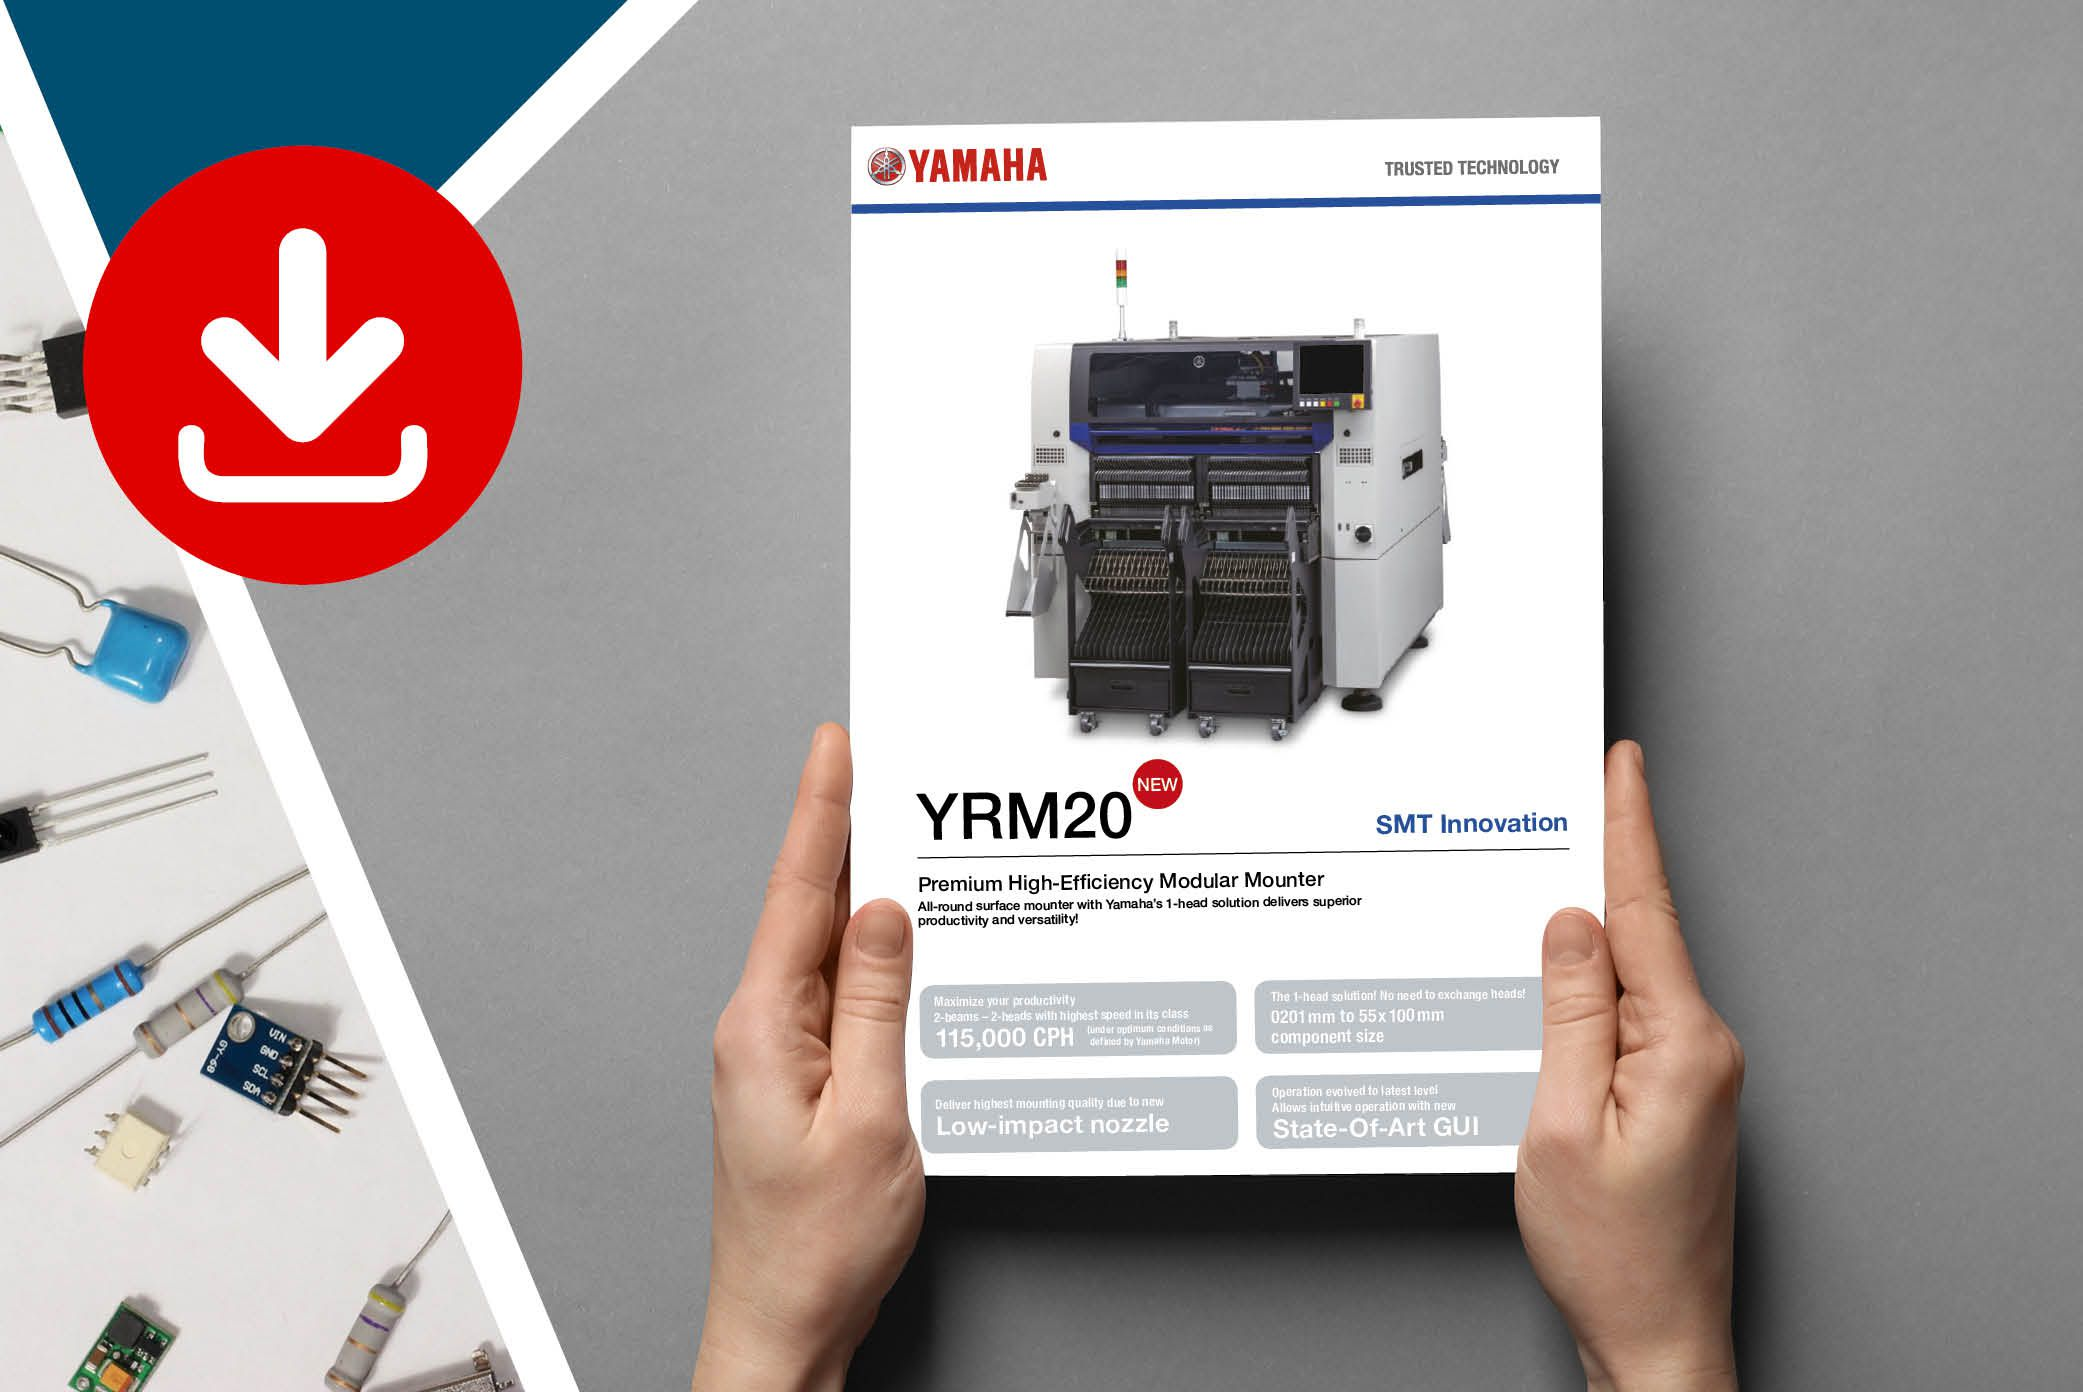 YAMAHA YRM20 flyer with specifications can be downloaded here